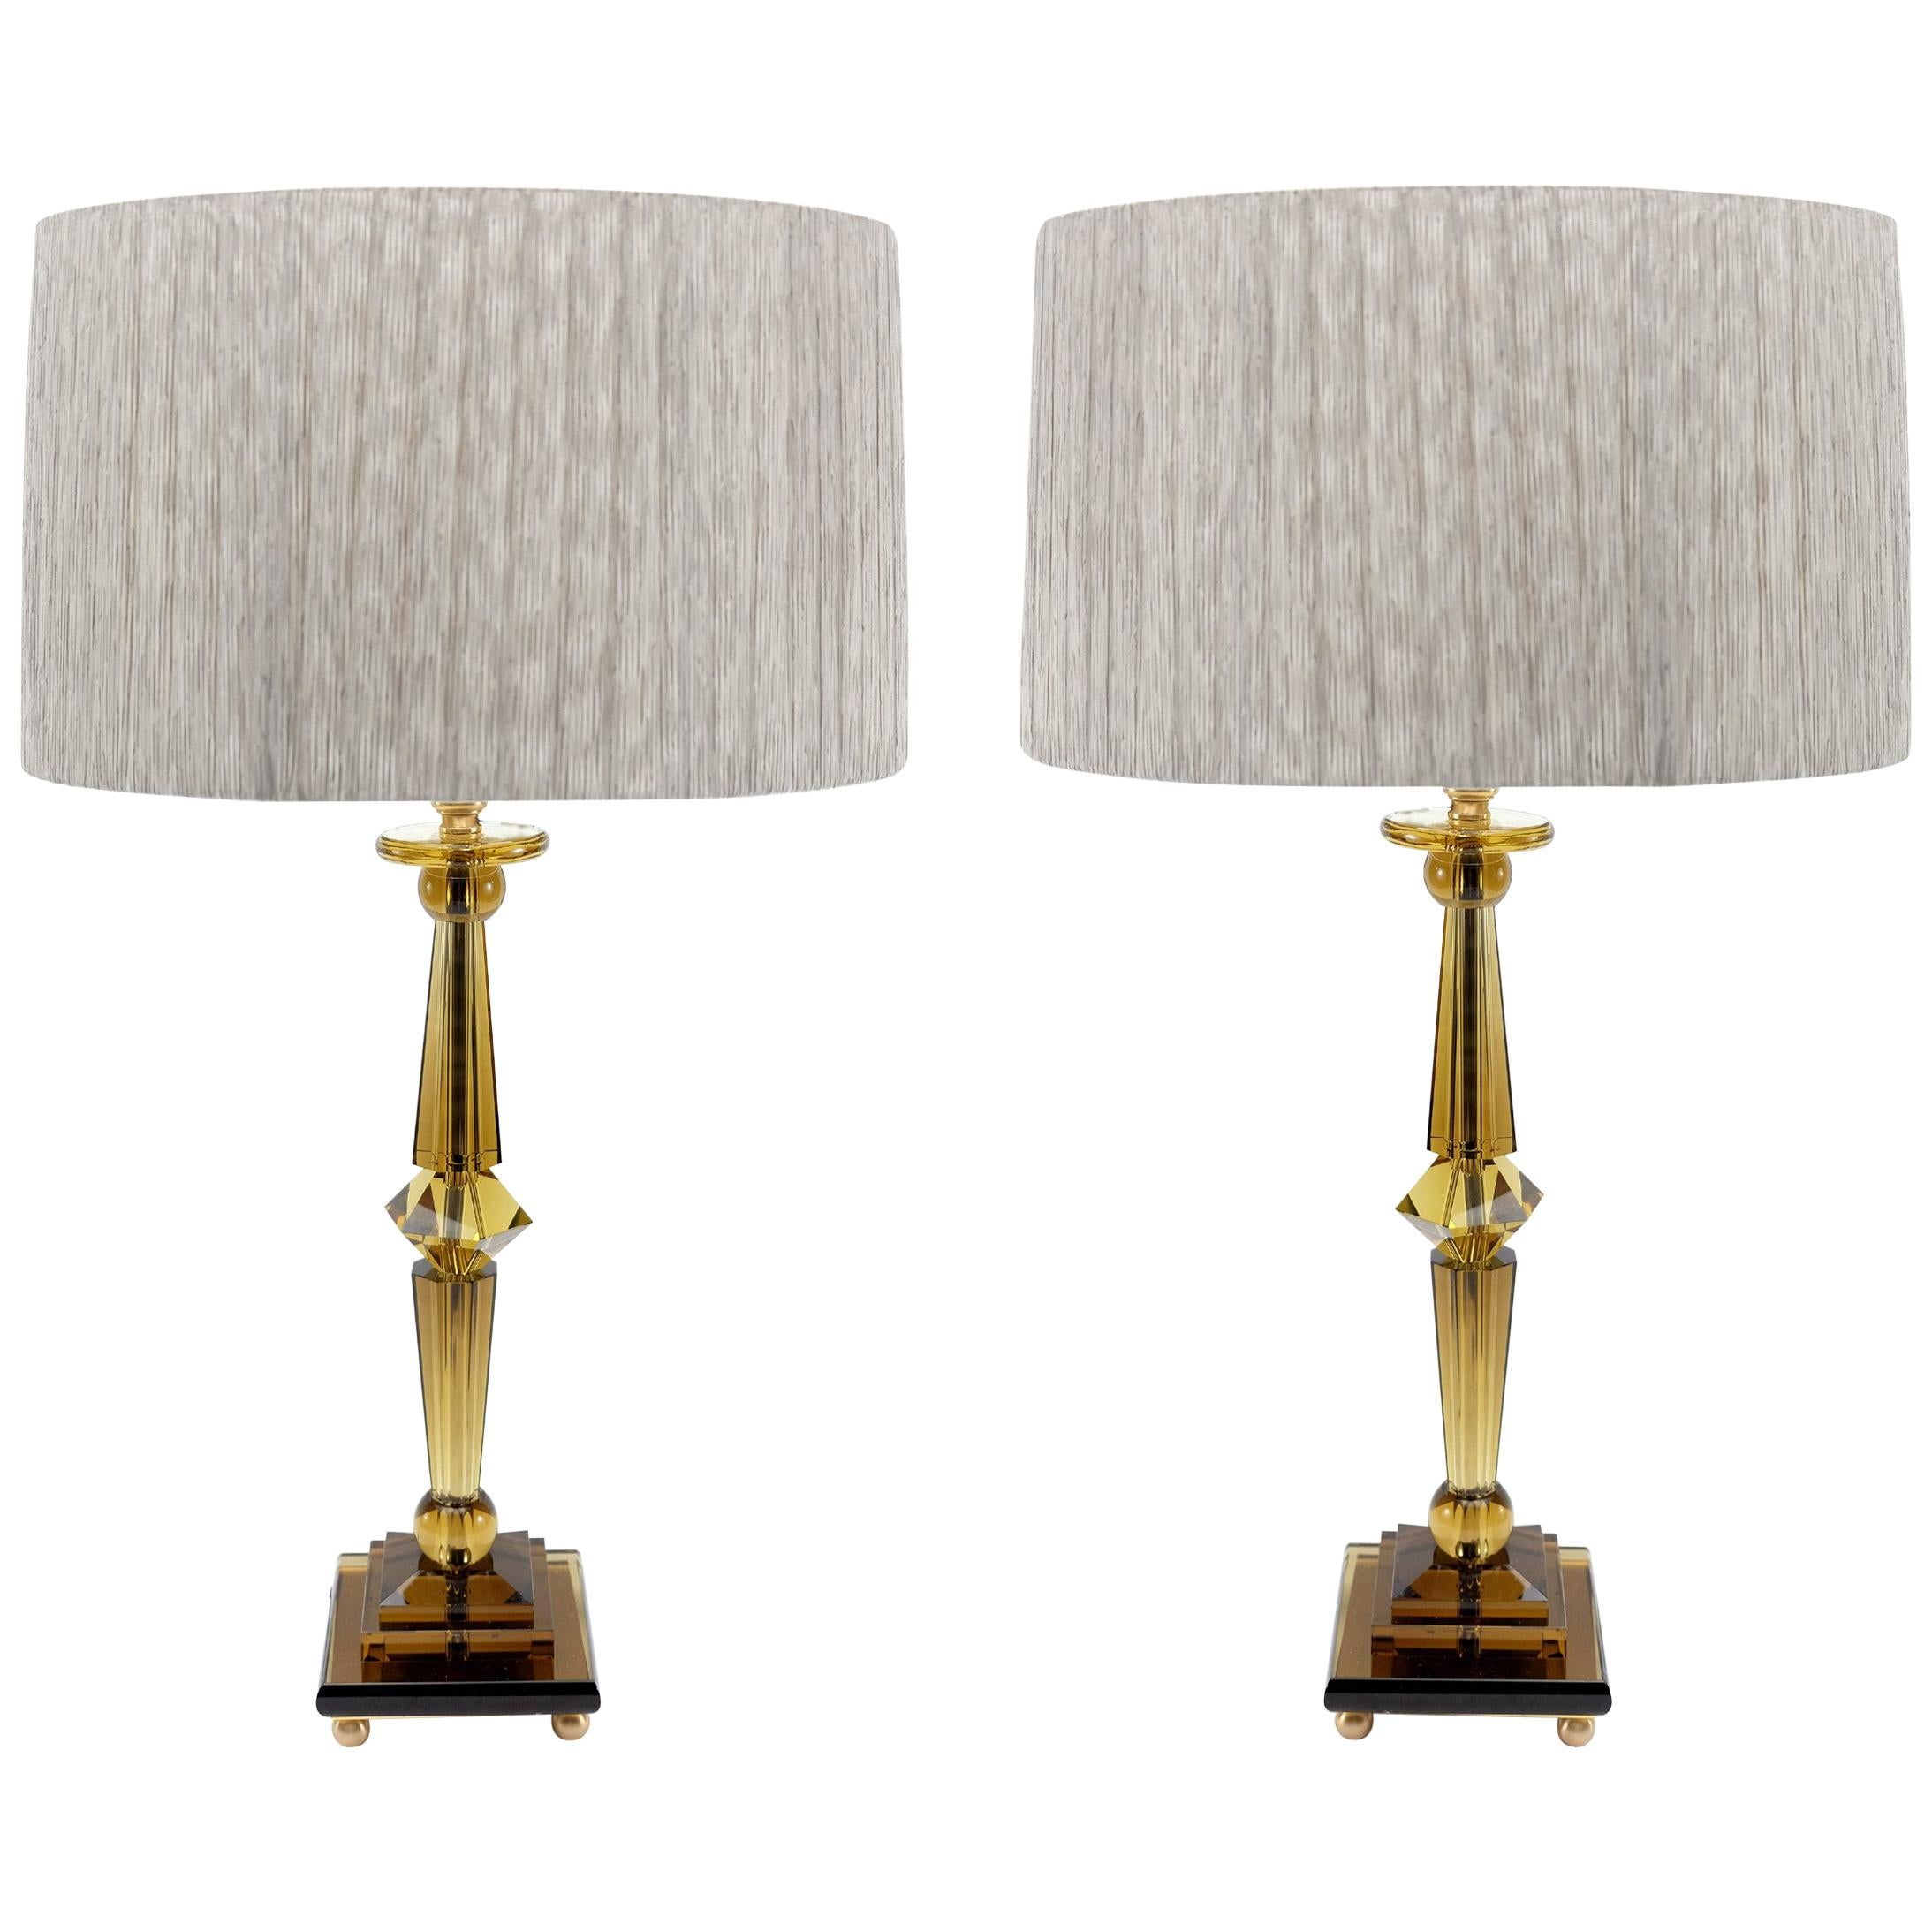 Prisma Big Table Lamp By Attilio Amato For Laudarte Srl, Pair Available For  Sale